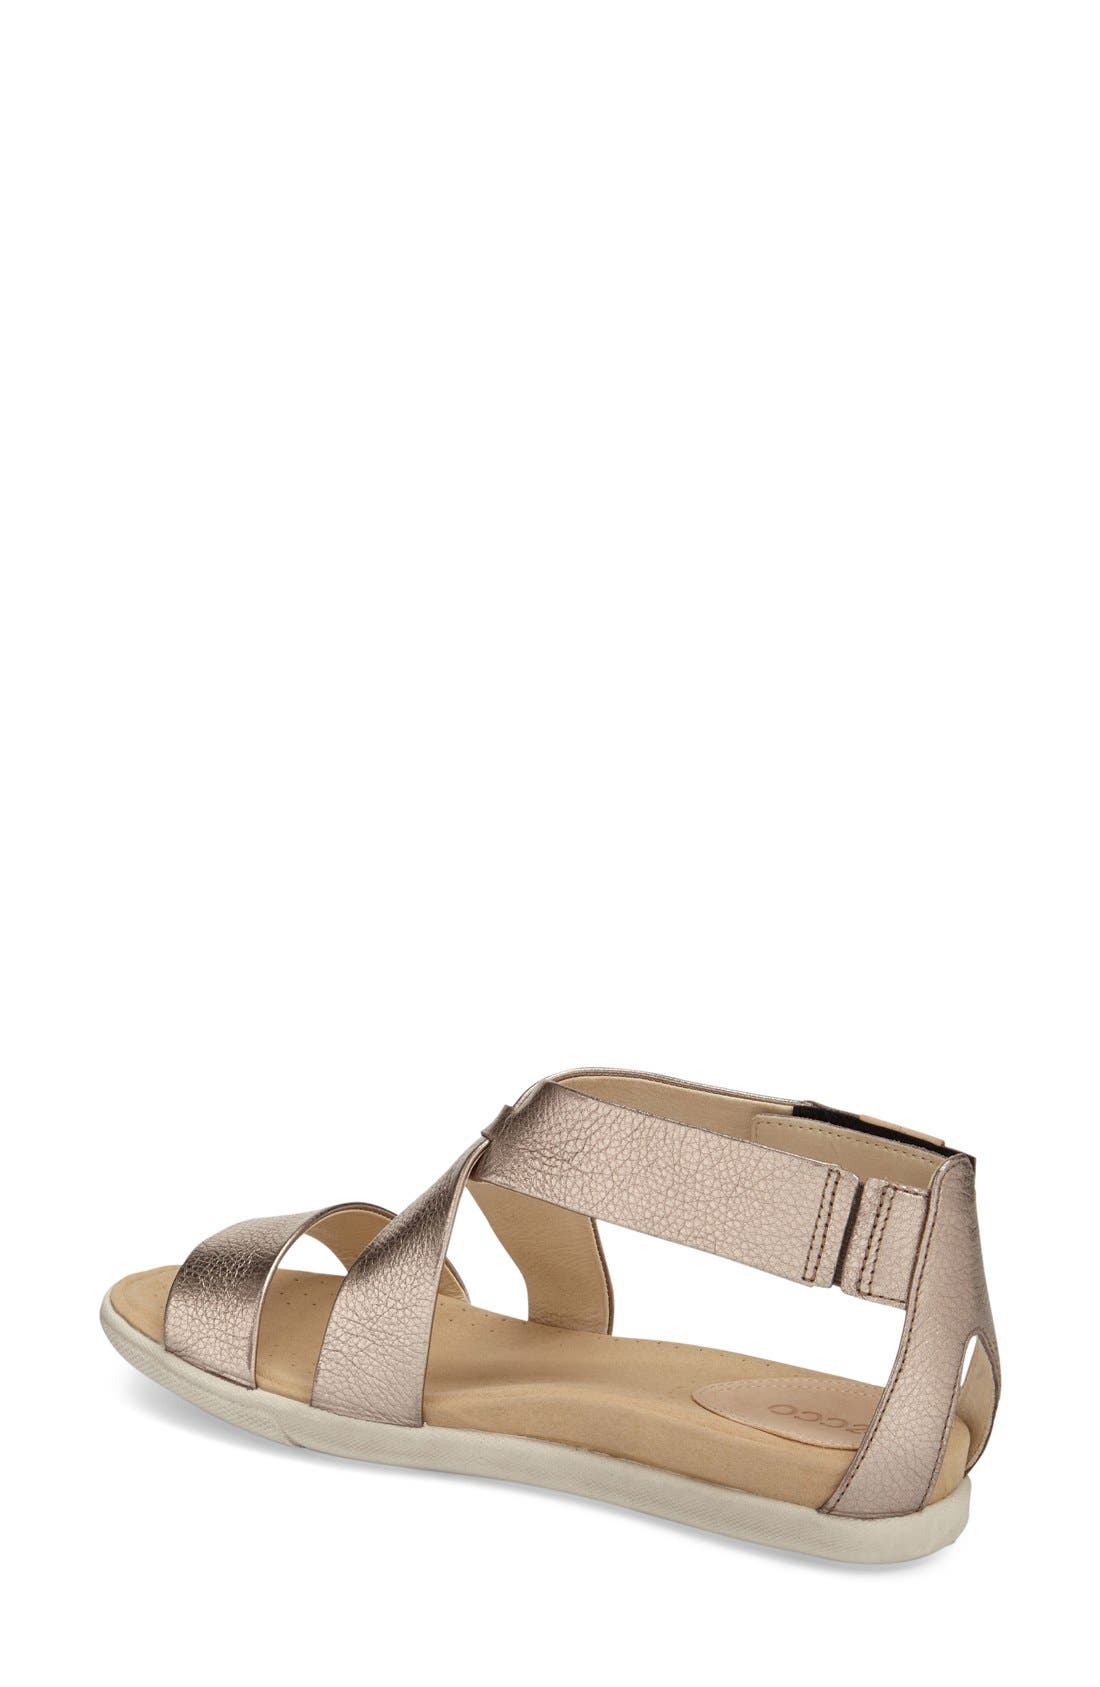 Alternate Image 2  - ECCO Damara Sandal (Women)